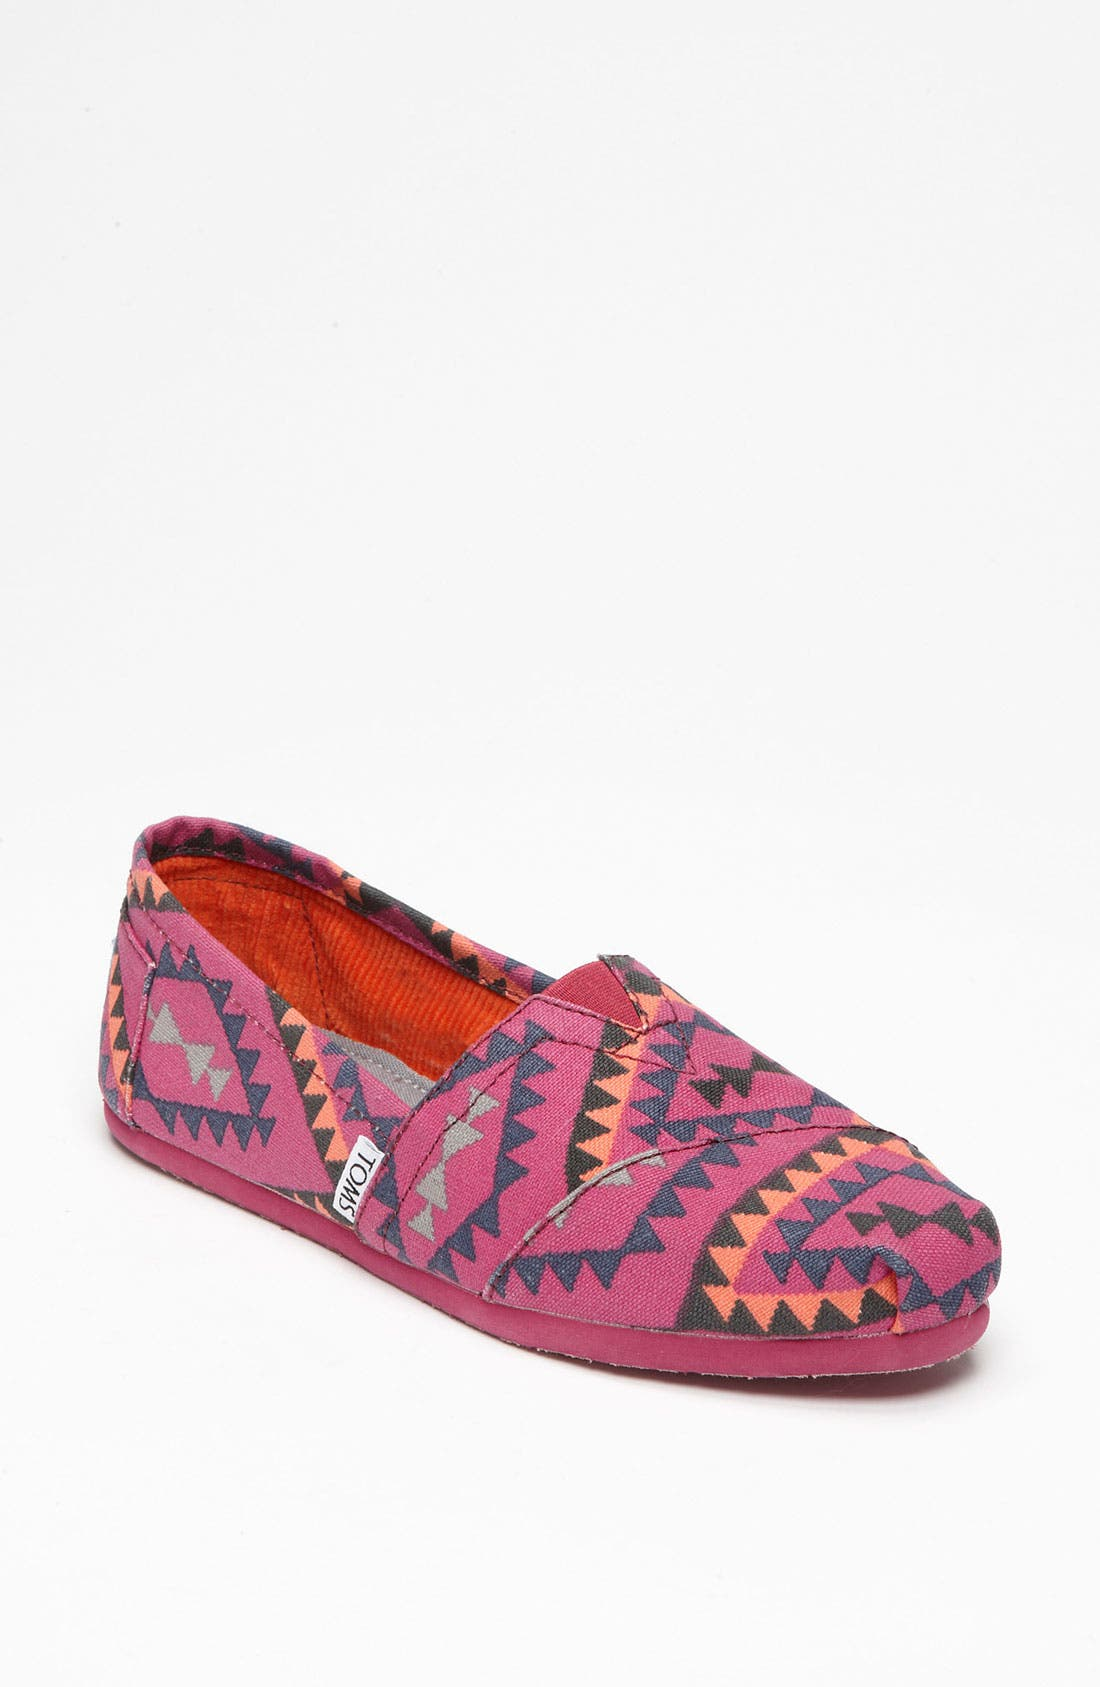 Alternate Image 1 Selected - TOMS 'Classic - Indo' Slip-On (Women)